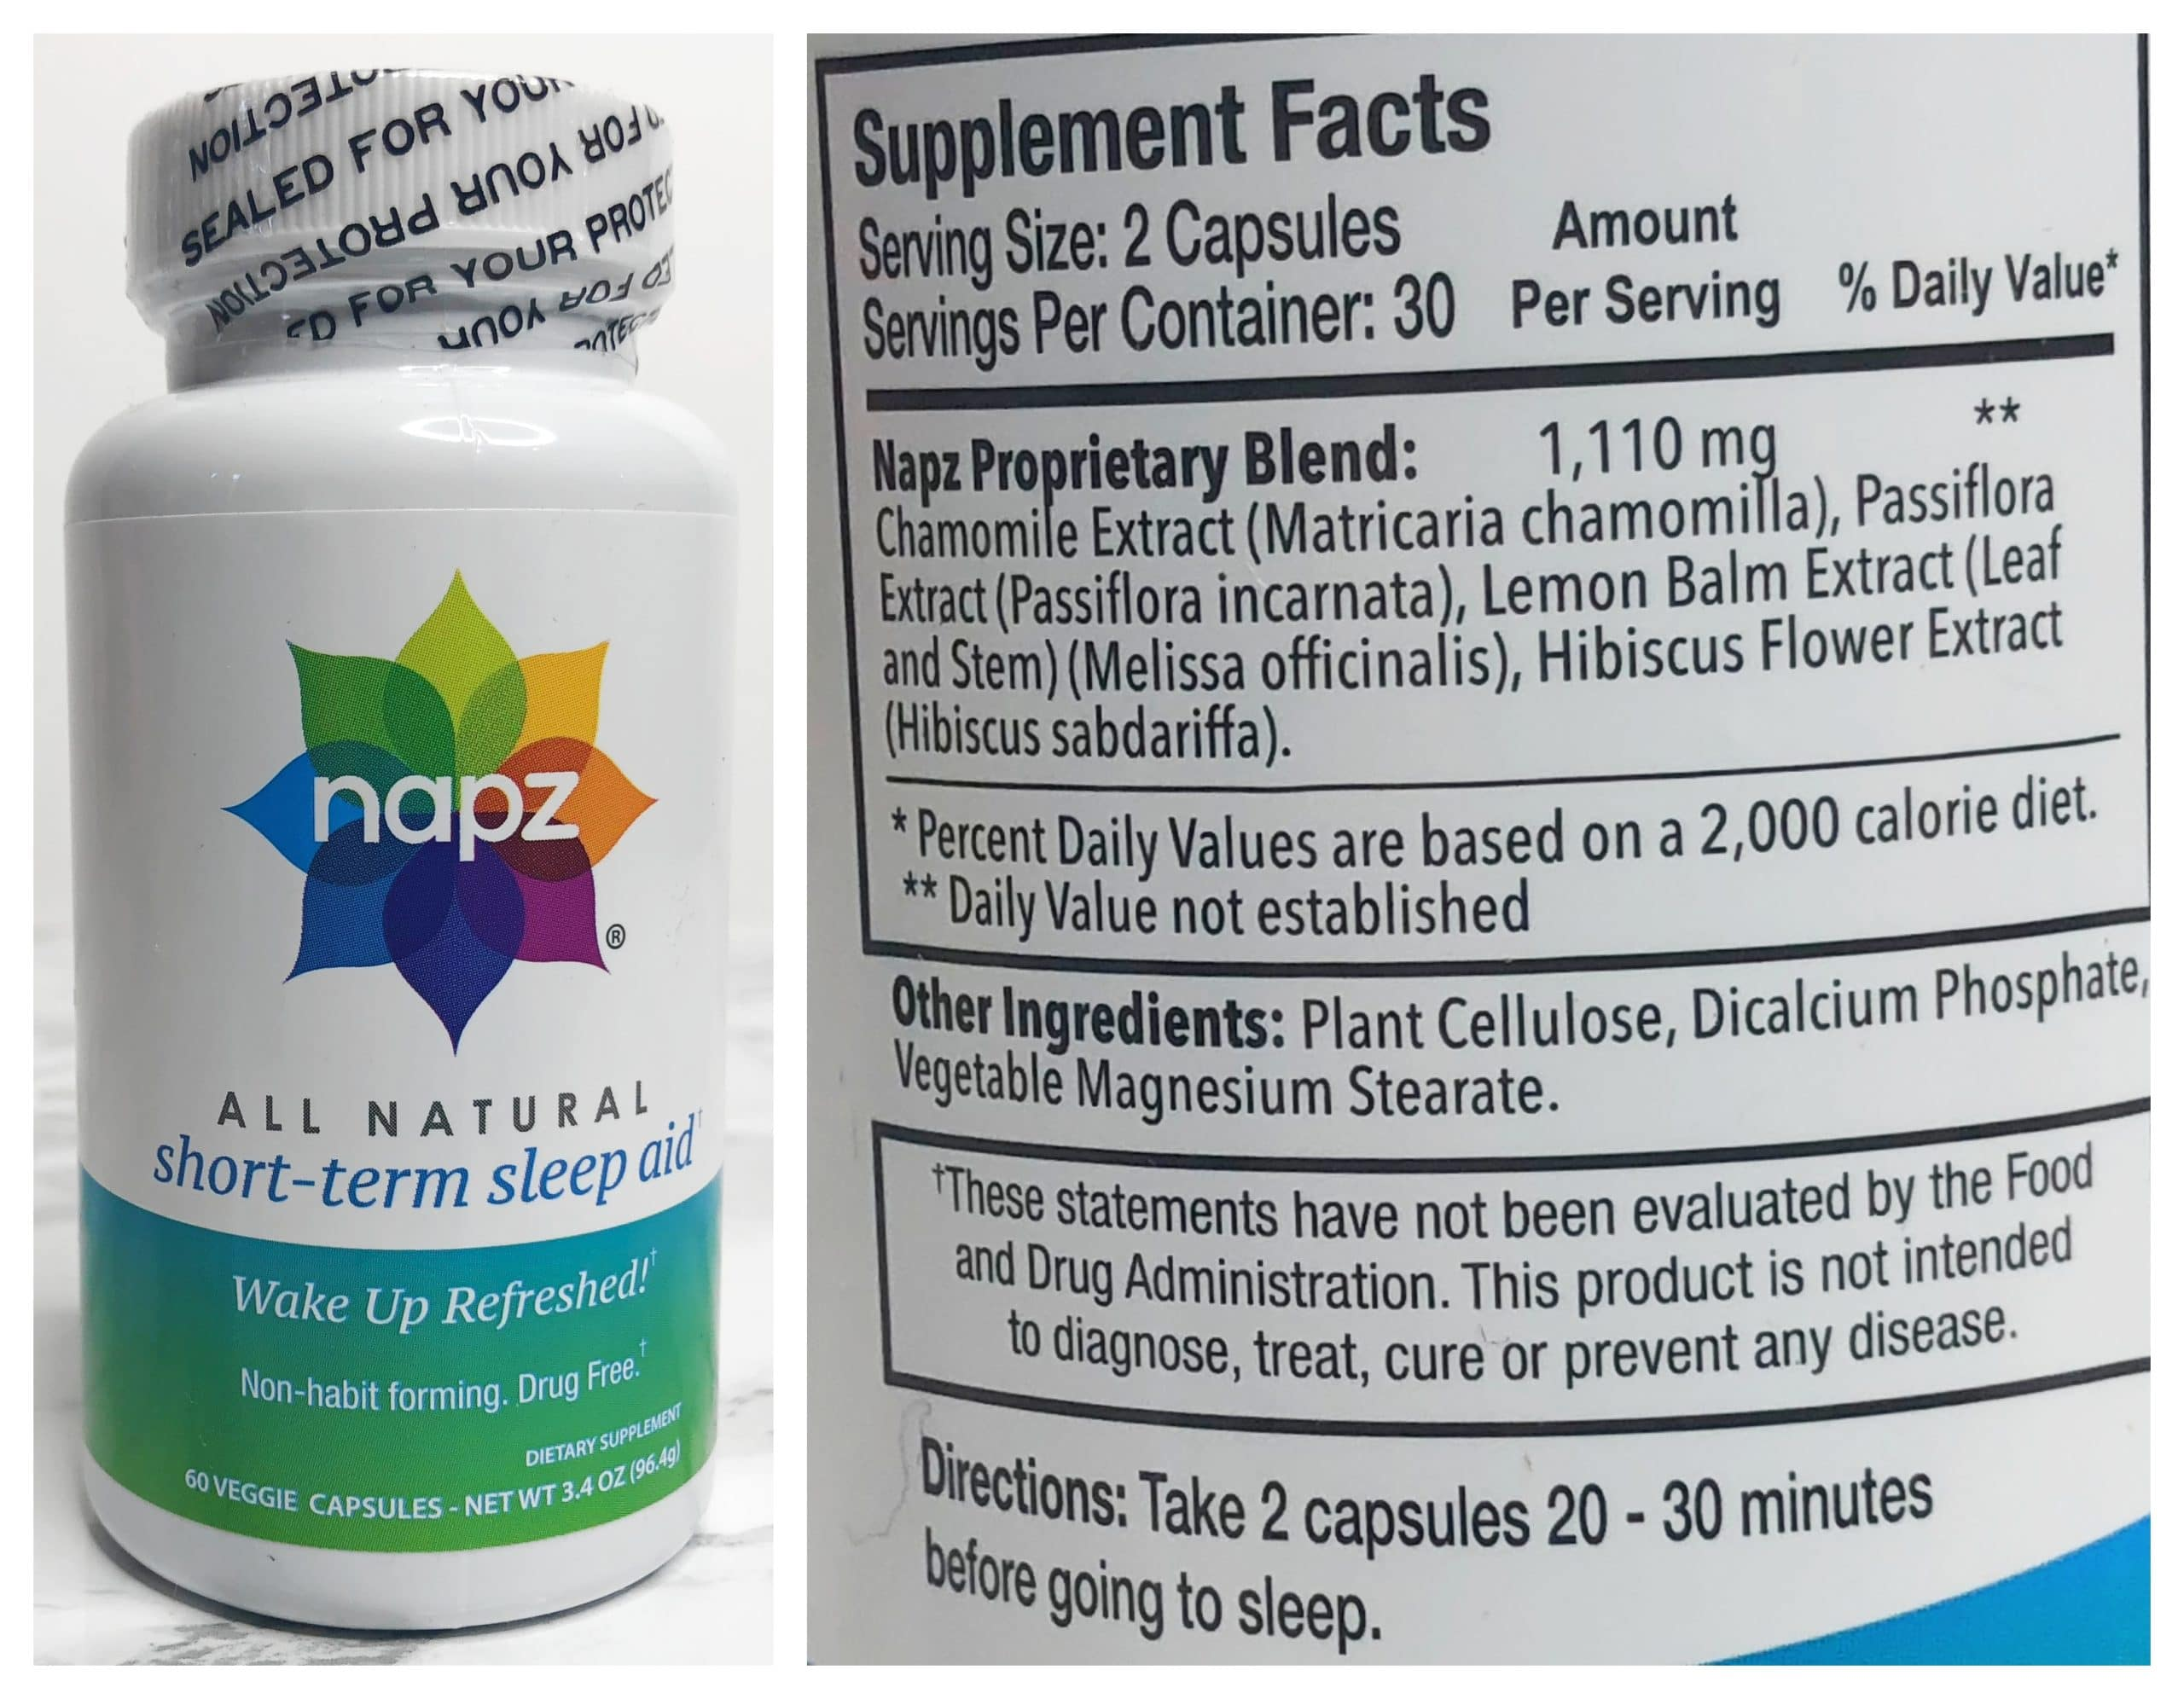 Urthbox Reviews - Napz All Natural Short-Term Sleep Aid